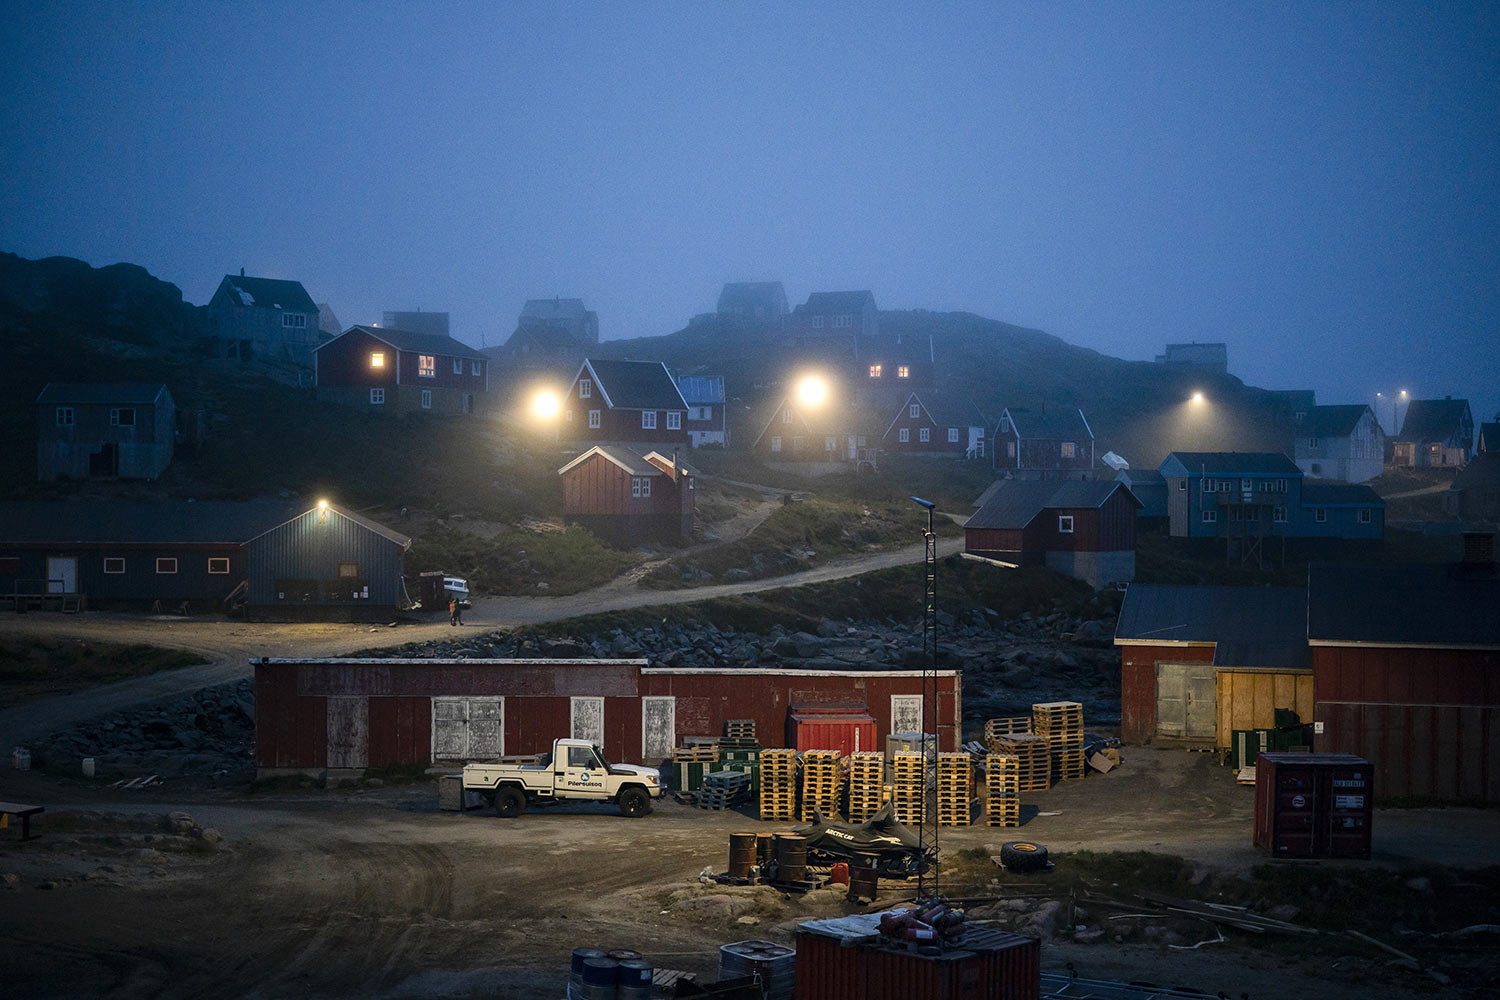 Early morning fog shrouds homes on Aug. 15, 2019, in Kulusuk, Greenland. In tiny Kulusuk, resident Mugu Utuaq says the winter that used to last as long as 10 months when he was a boy, can now be as short as five months. Scientists are hard at work in Greenland, trying to understand the alarmingly rapid melting of the ice. (AP Photo/Felipe Dana)